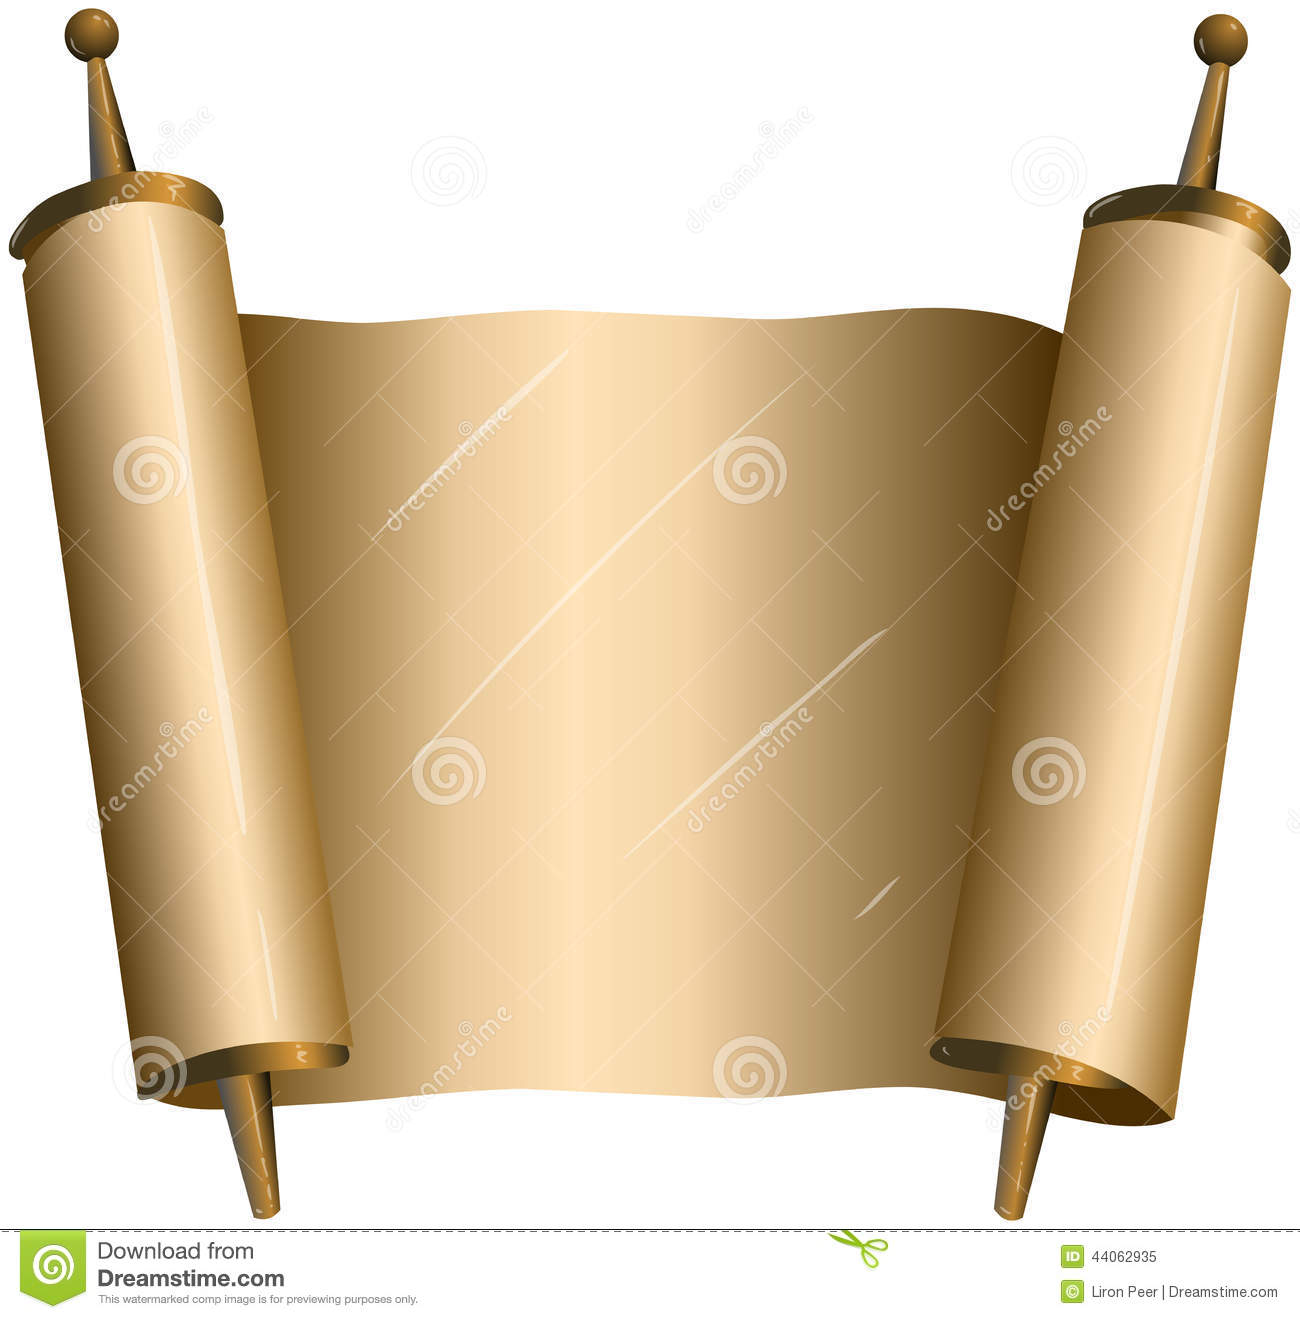 Traditional Jewish Torah Scroll Stock Vector - Image: 44062935